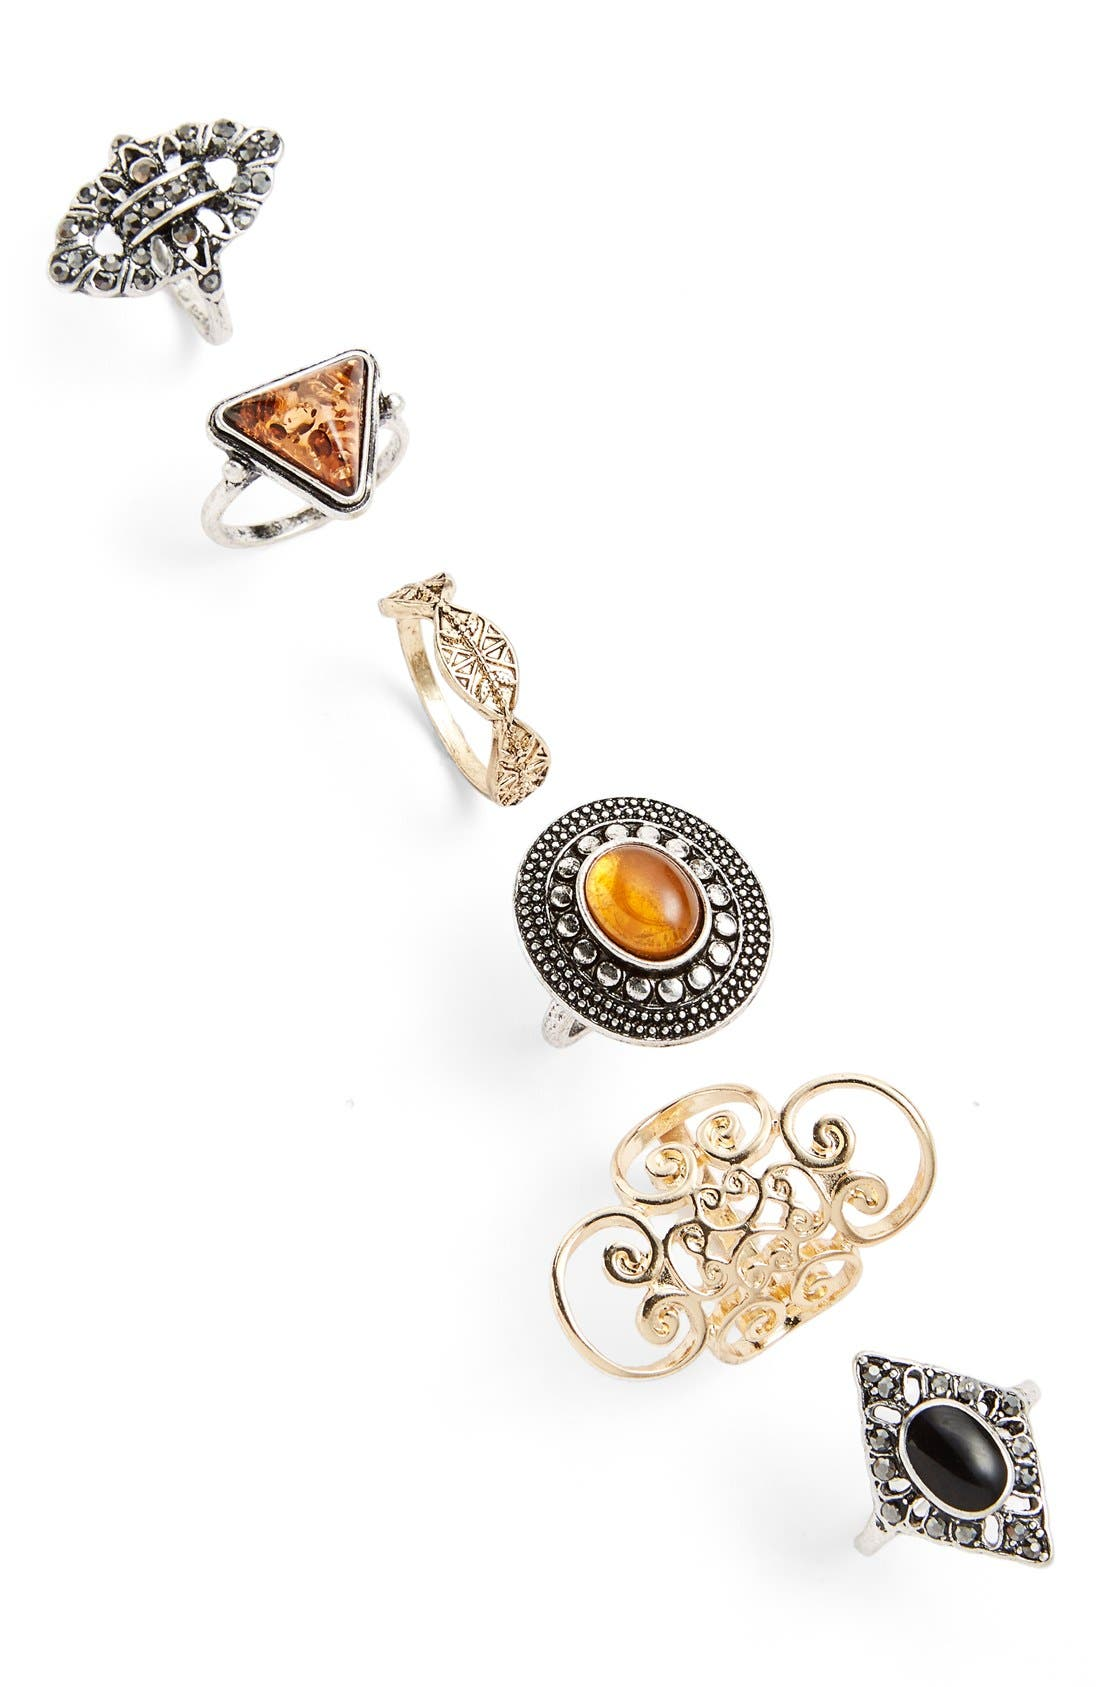 Main Image - Topshop 'Amber Look' Rings (Set of 6)